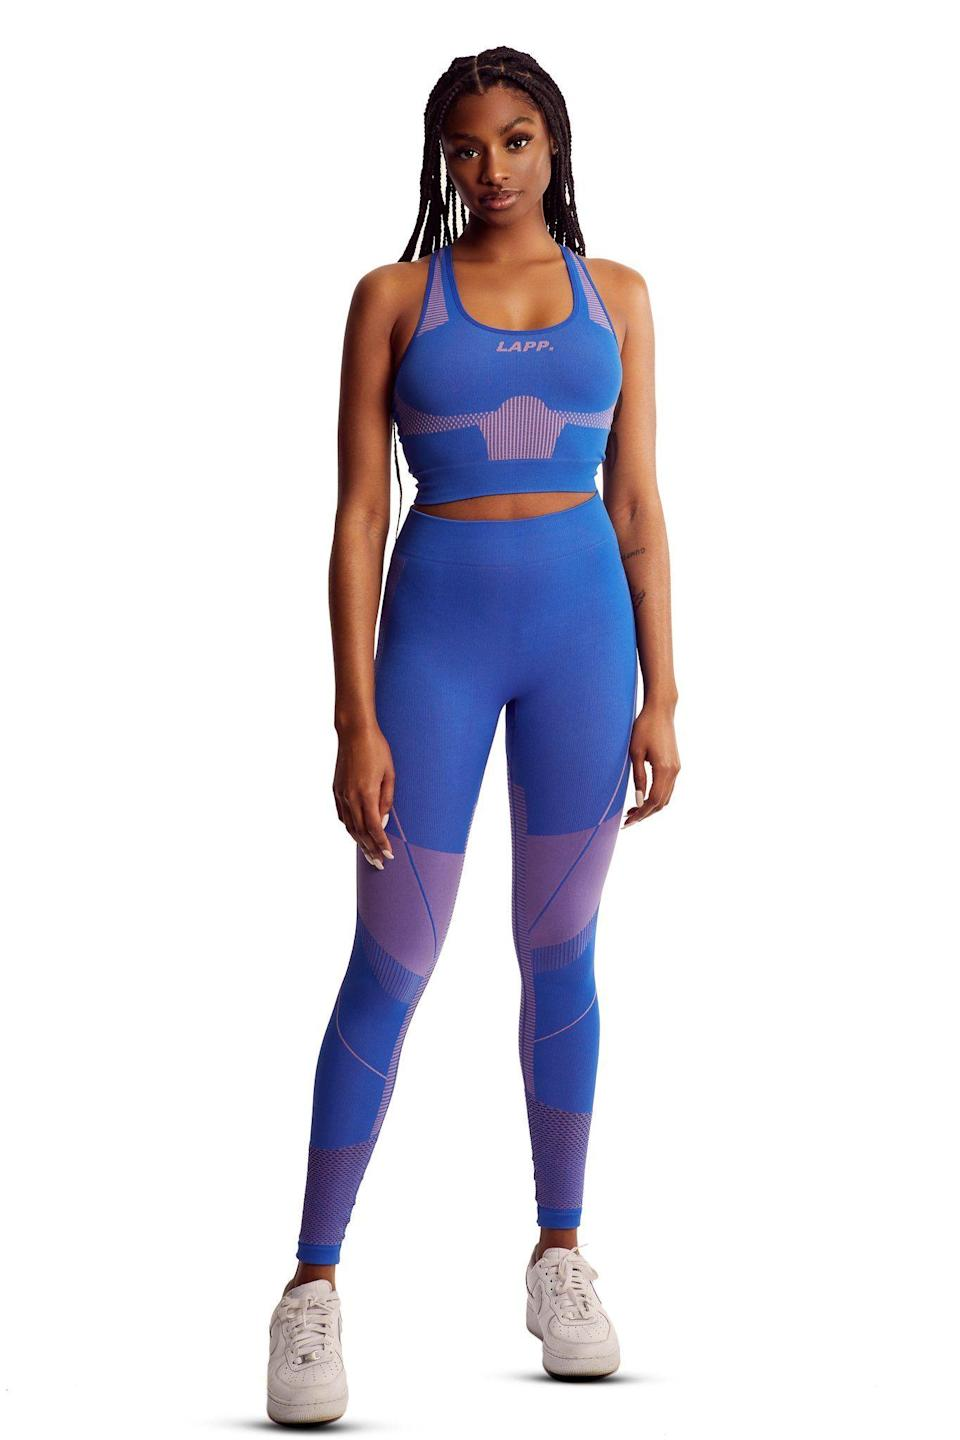 "<p><strong>seamless</strong></p><p>lappthebrand.com</p><p><strong>£100.00</strong></p><p><a href=""https://www.lappthebrand.com/collections/all/products/nautical-blue-seamless-legging?variant=32113185357914"" rel=""nofollow noopener"" target=""_blank"" data-ylk=""slk:Shop Now"" class=""link rapid-noclick-resp"">Shop Now</a></p>"